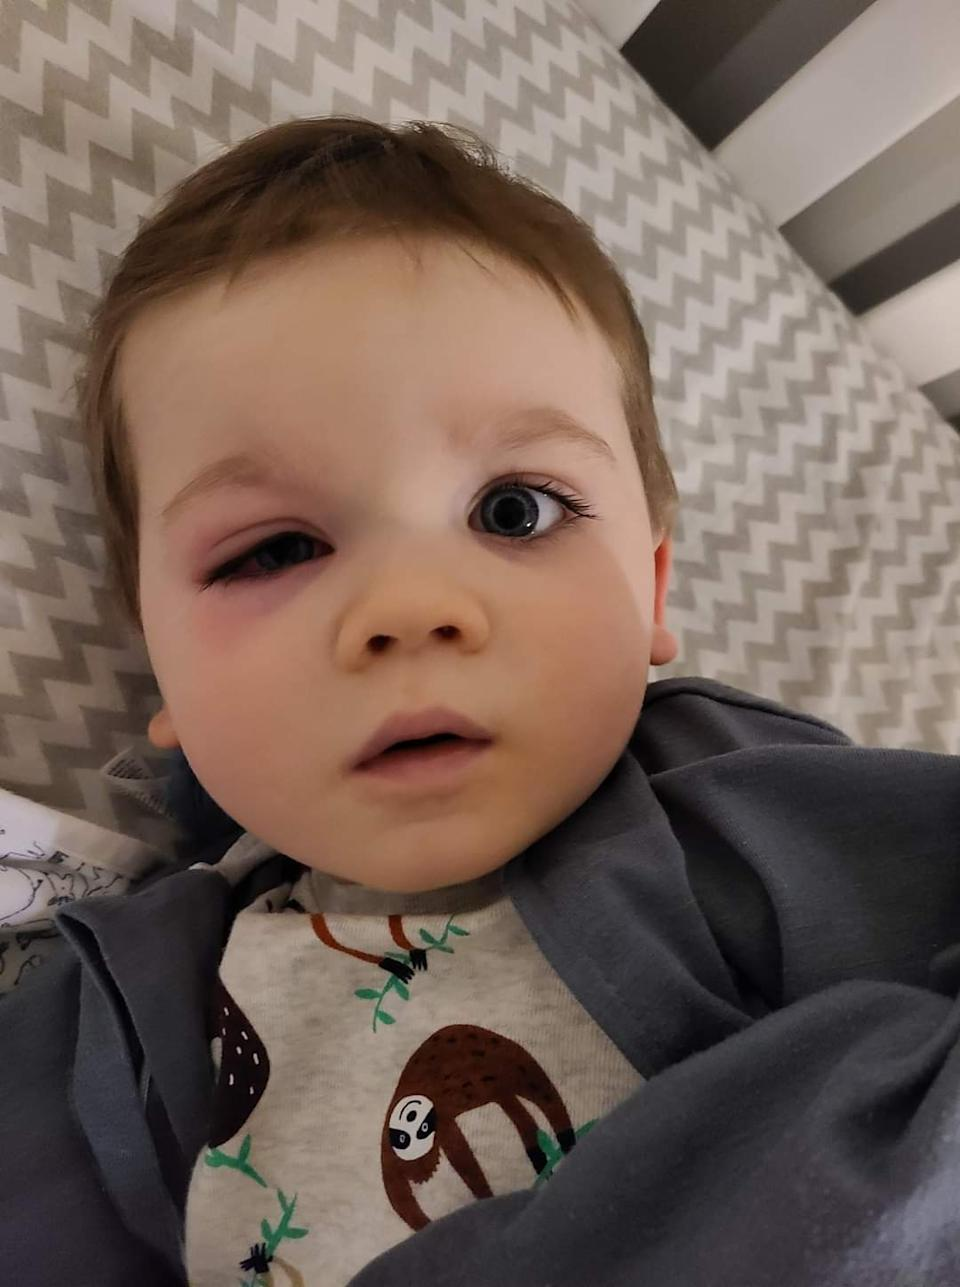 The writer's son, with the eye infection that sent him to the hospital. (Photo courtesy Eden Strong)